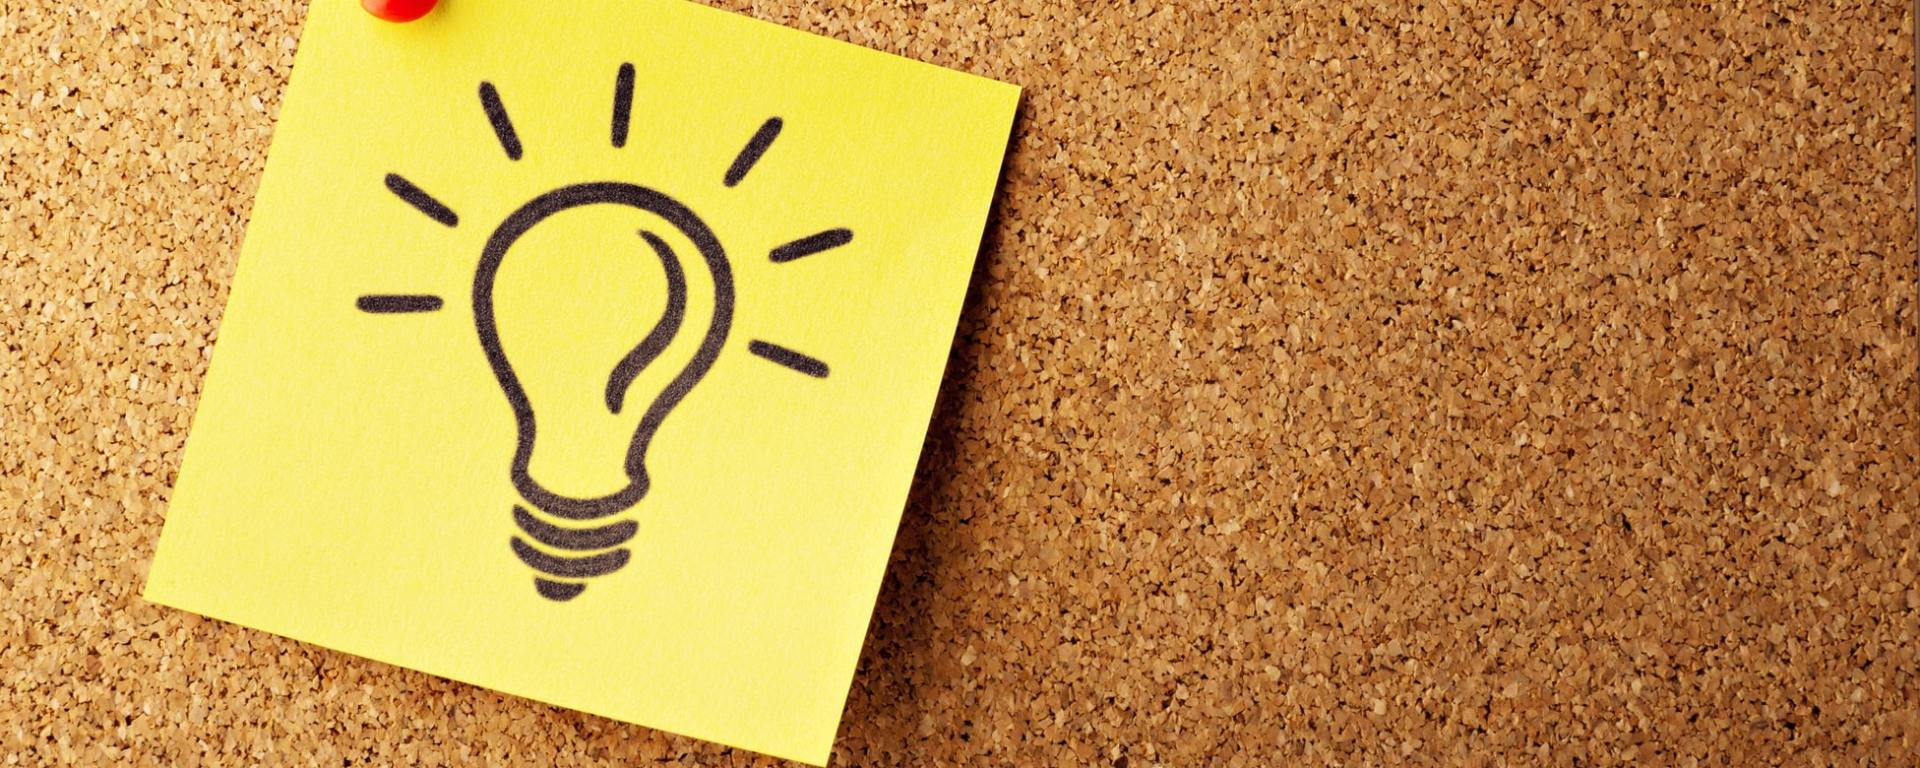 How to Tell the Difference Between a Good Idea and a God Idea